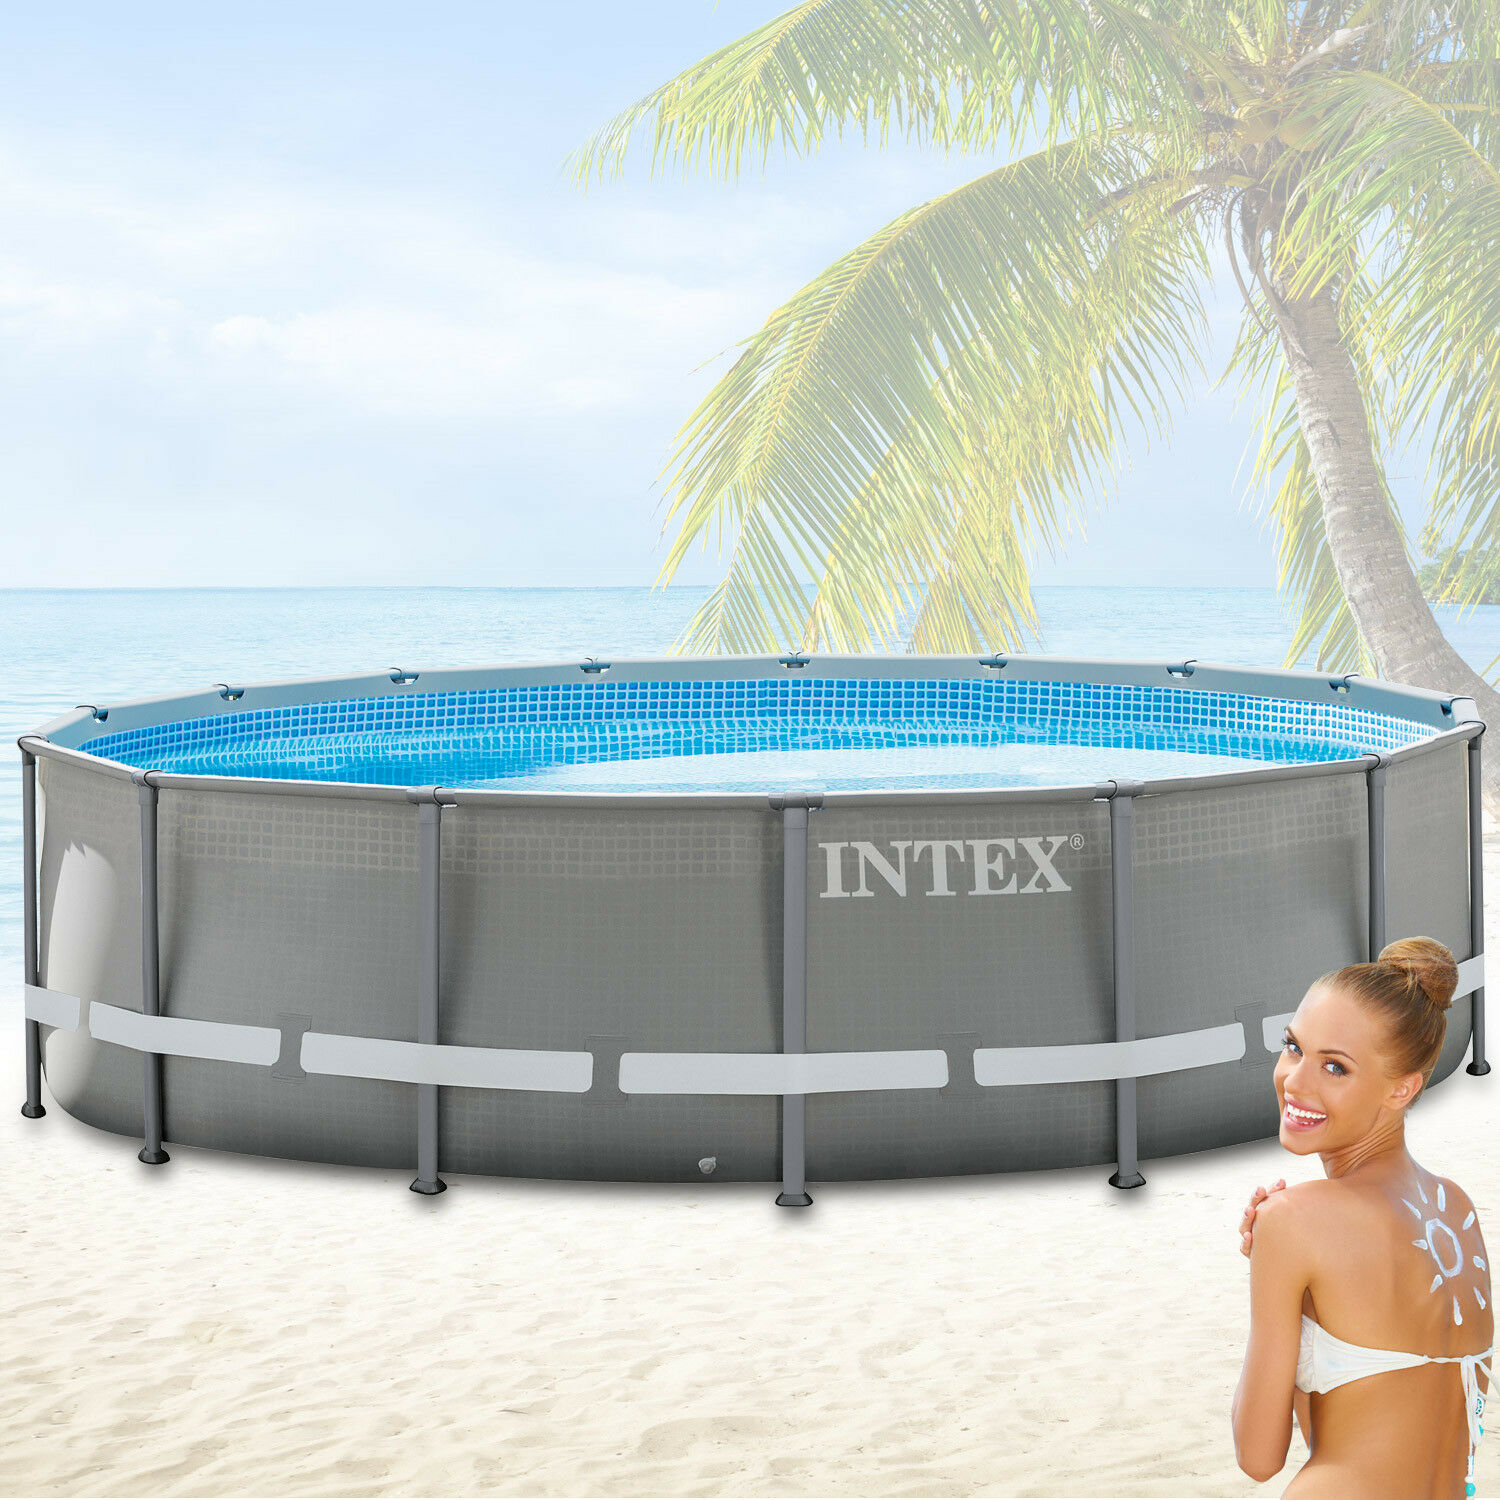 Intex 549x132 swimming pool frame stahlwandbecken for Swimmingpool stahl